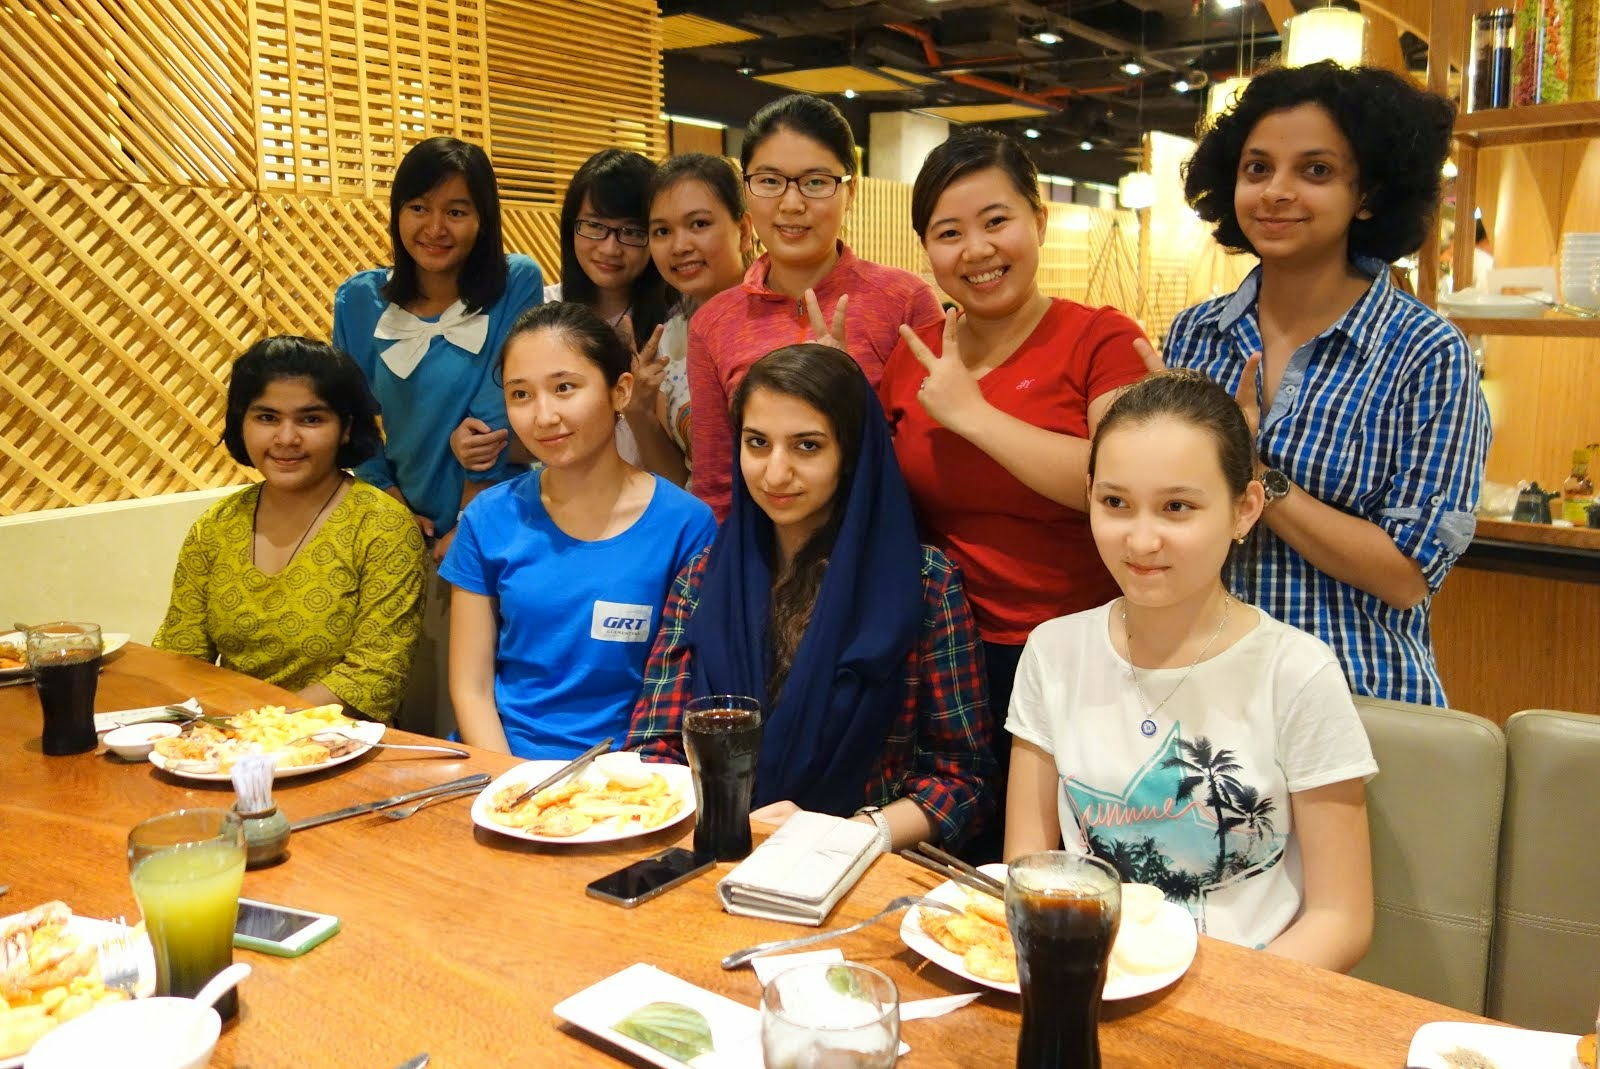 Photos from 2014 WOM FIDE Chess for Top Girls Asia - Saigon